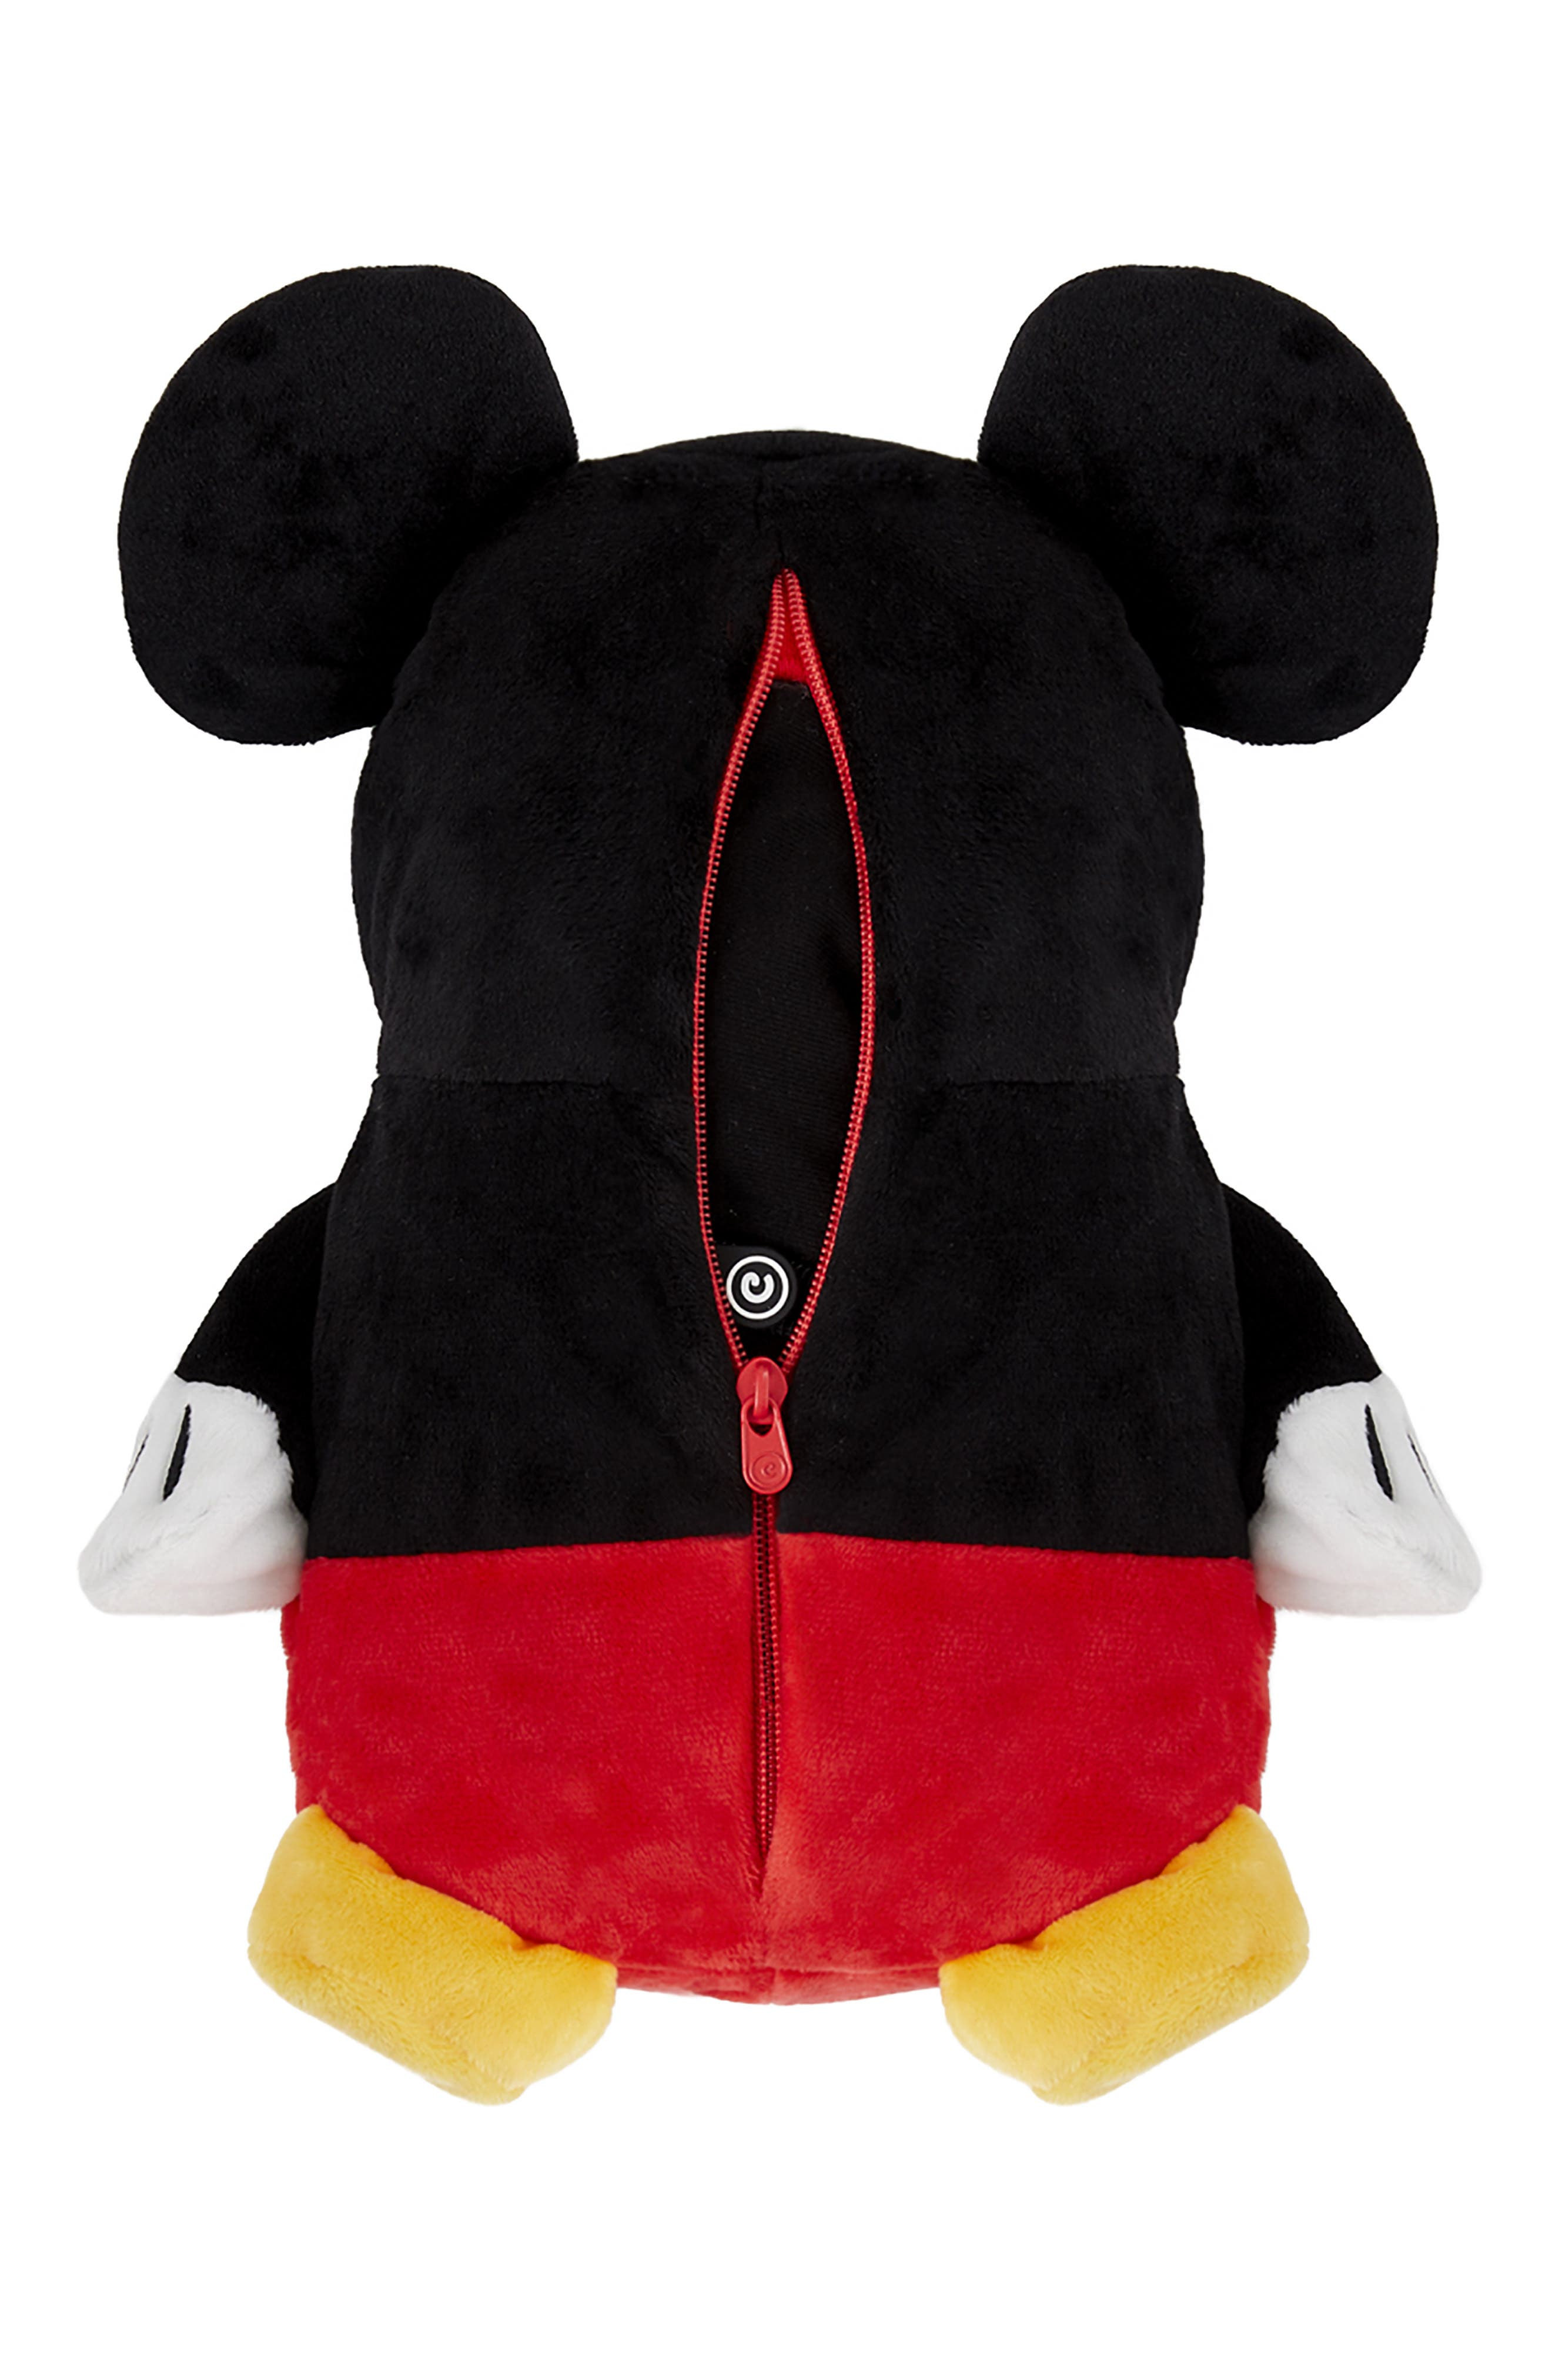 Mickey Mouse<sup>®</sup> 2-in-1 Stuffed Animal Hoodie,                             Alternate thumbnail 5, color,                             BLACK / RED MIX